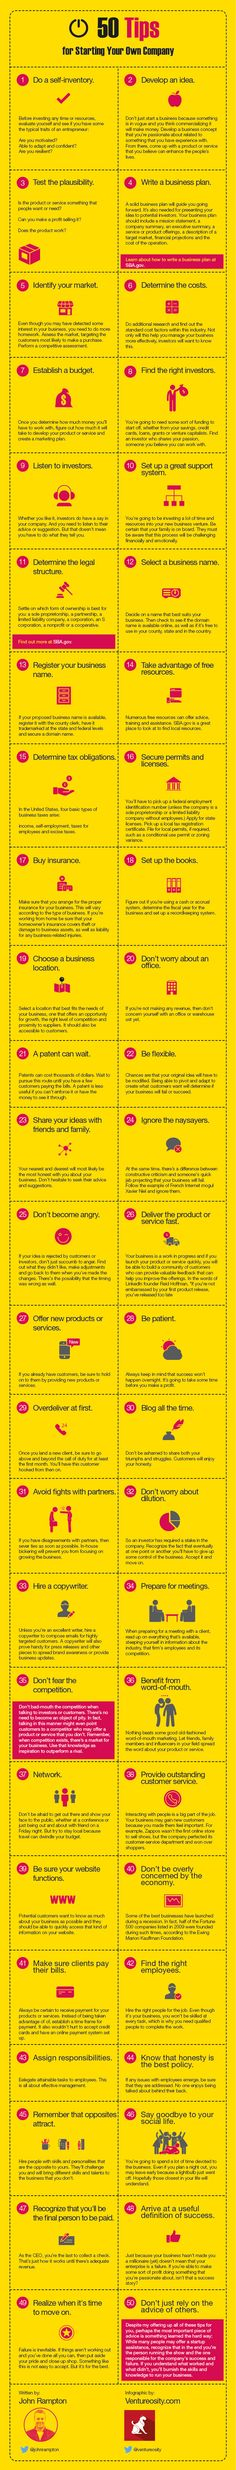 50 tips to Start Your Own Company   #infographics | Loved and pinned by www.misfeldtaccounting.com